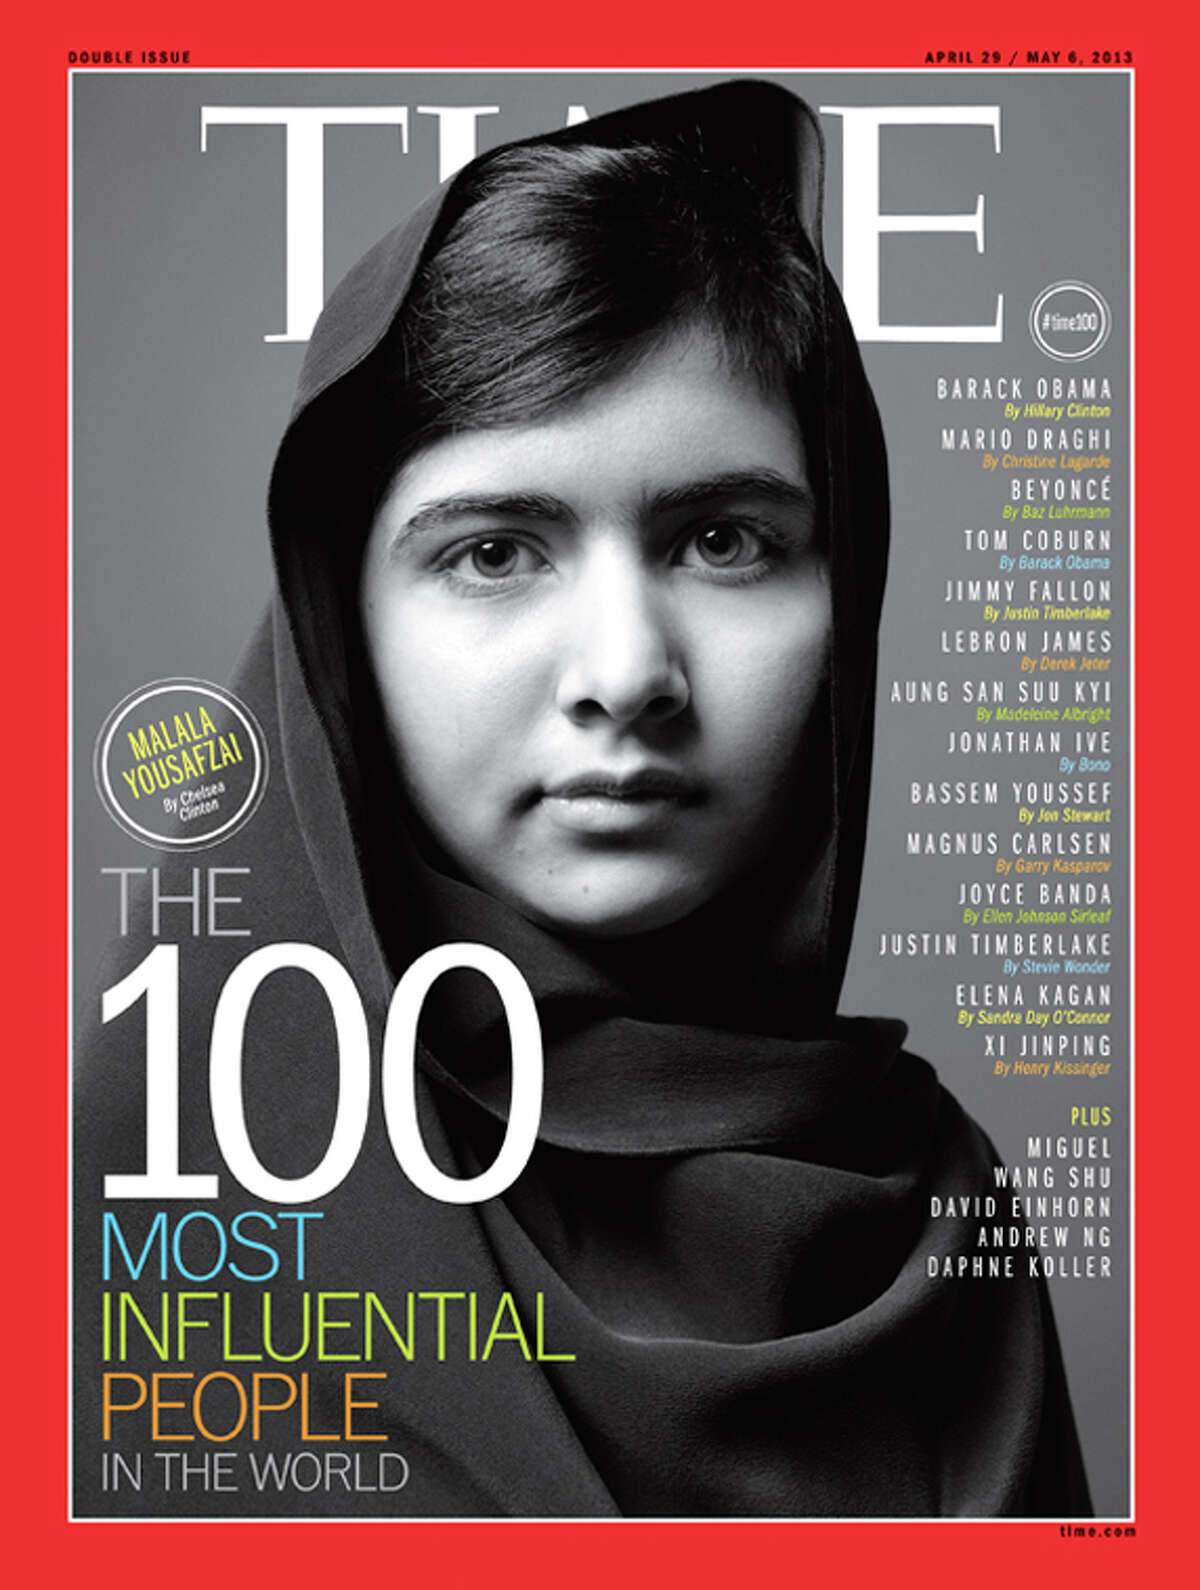 Malala Yousafzai on the cover of Time's 100 Most Influential People In The World.